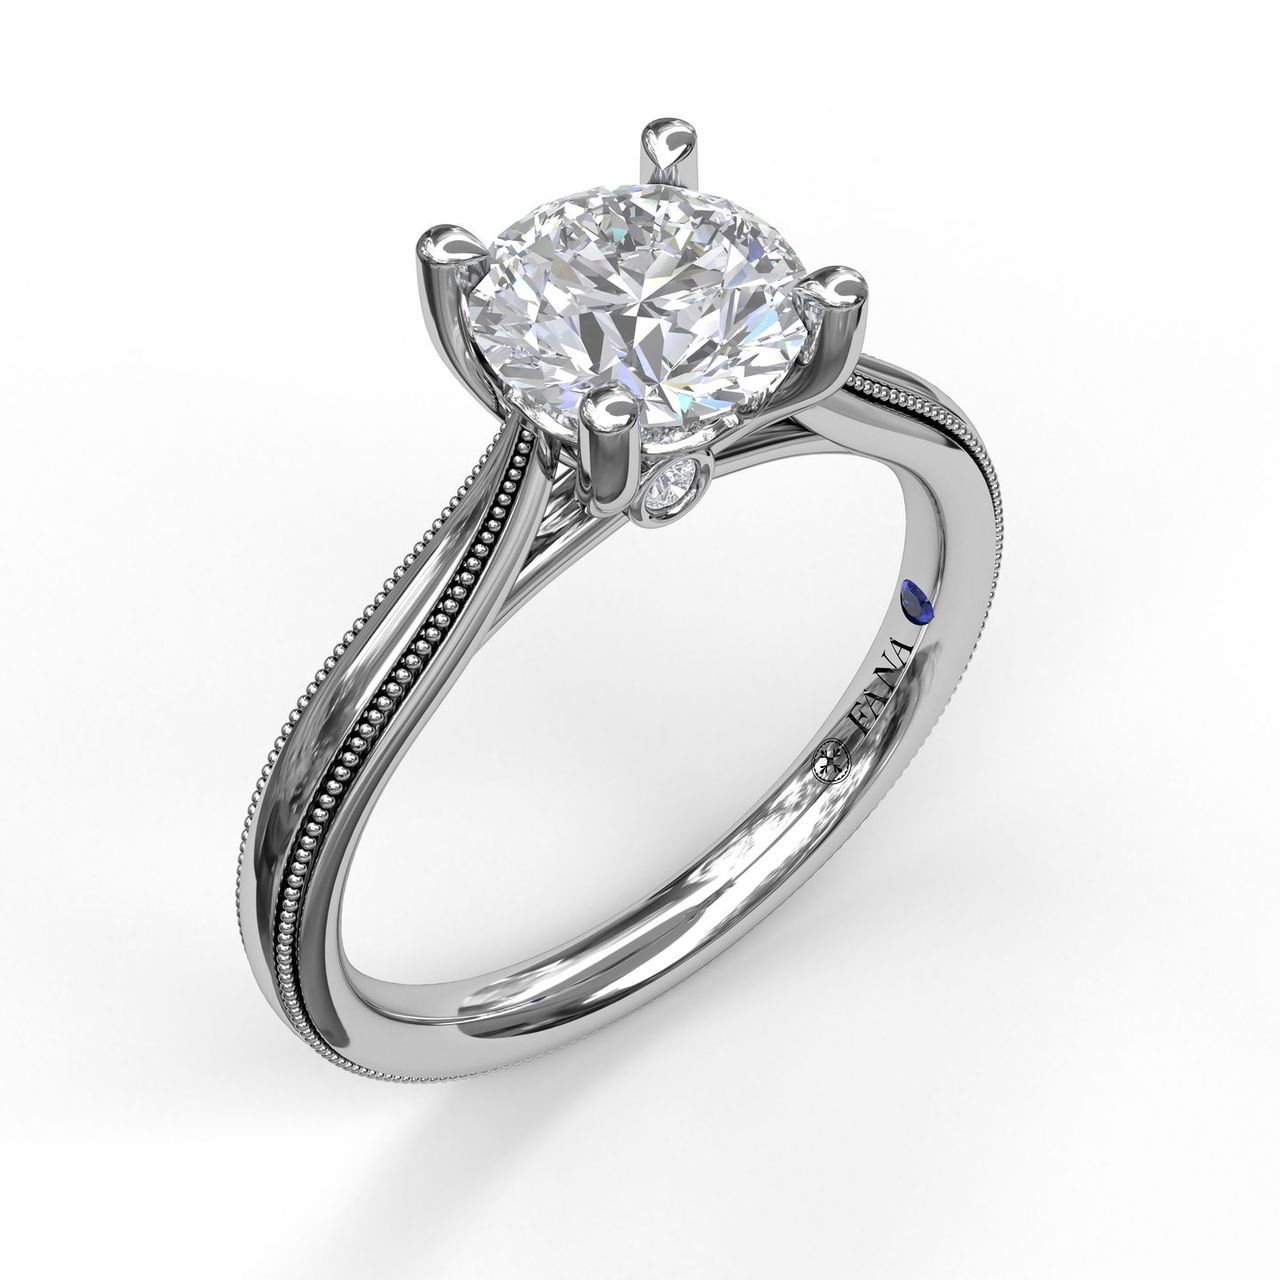 Round Cut Solitaire With Milgrain-Edged Band